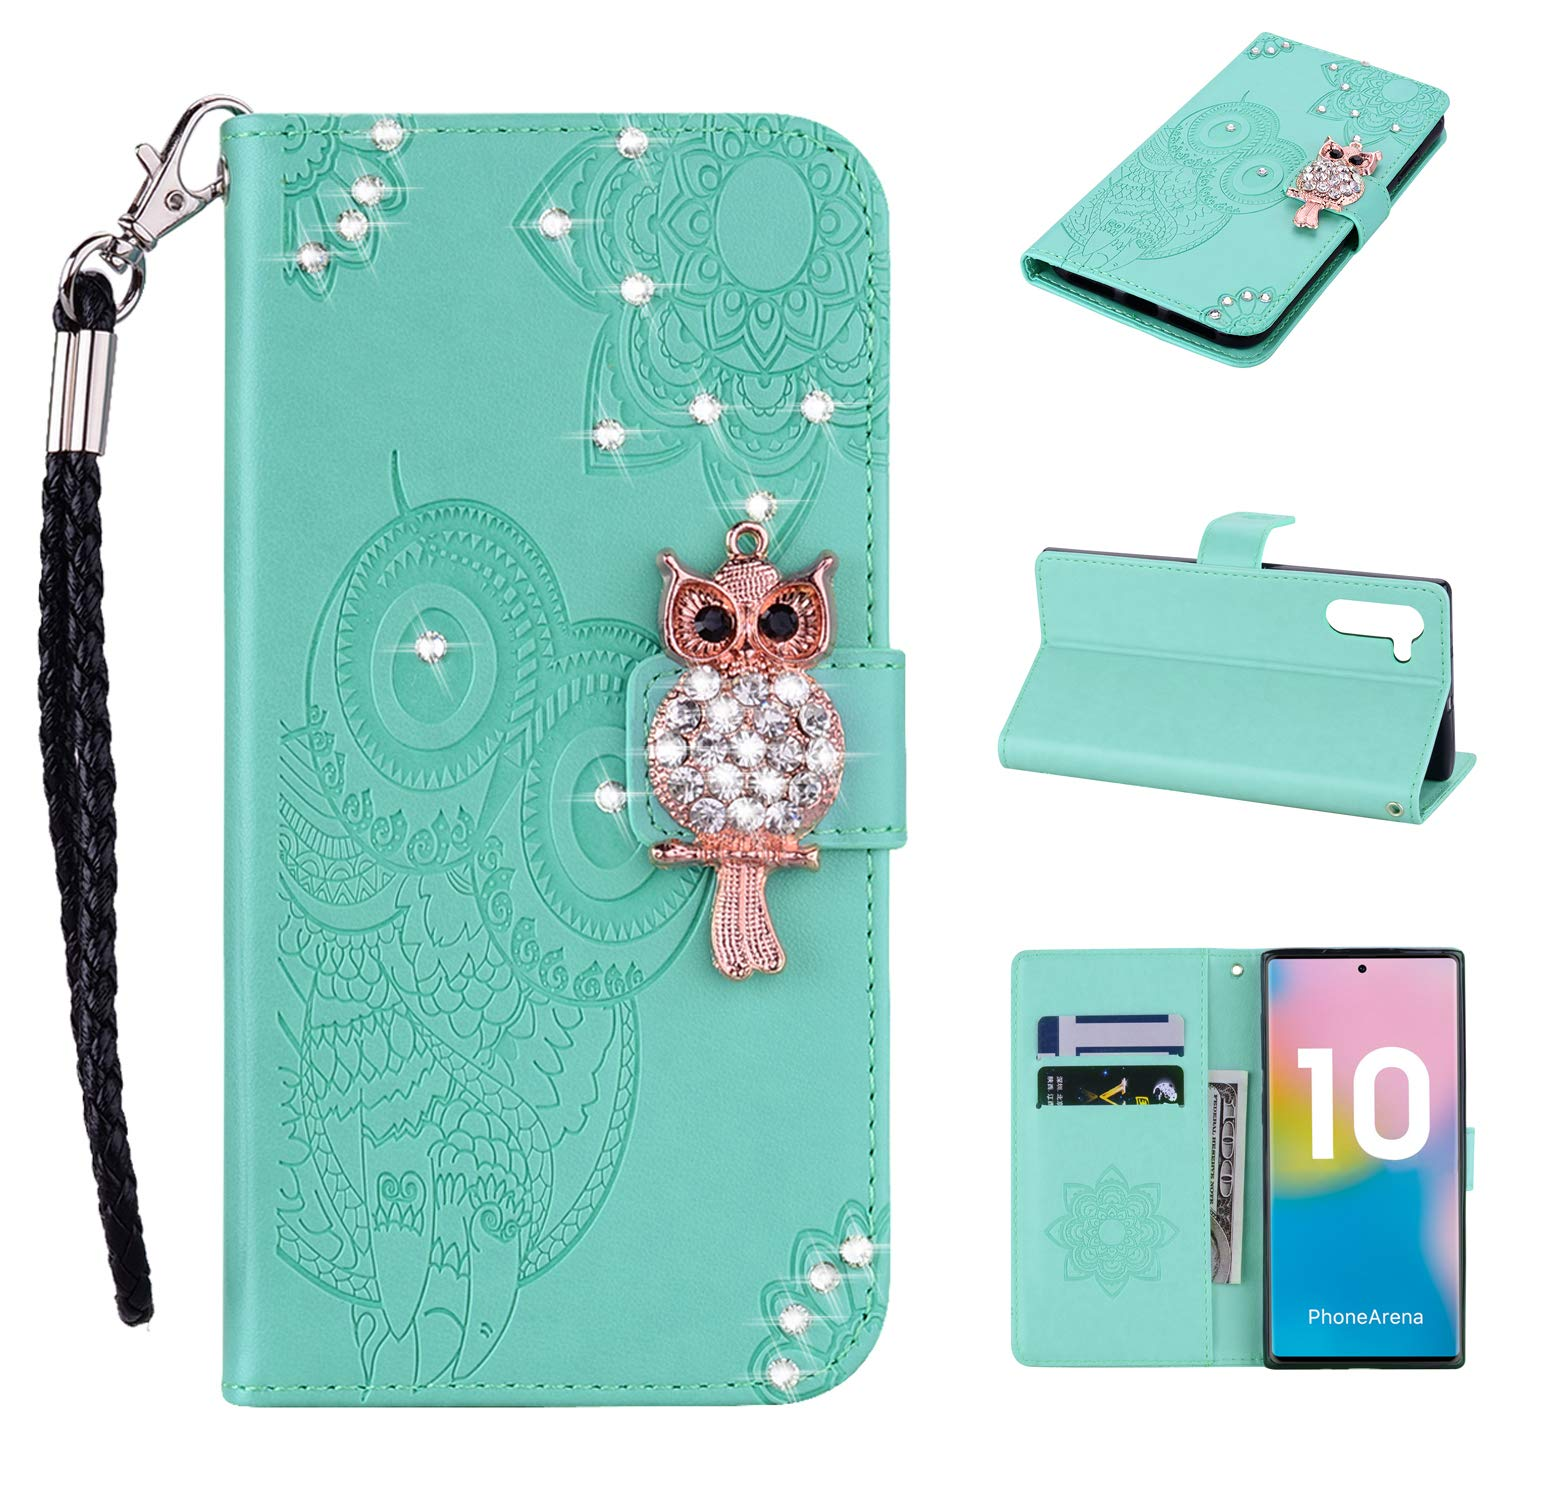 Amocase Wallet Case with 2 in 1 Stylus for Samsung Galaxy Note 10/Note 10 5G,3D Bling Gems Owl Magnetic Mandala Embossing Premium Strap PU Leather Card Slot Stand Case - Mint Green by Amocase